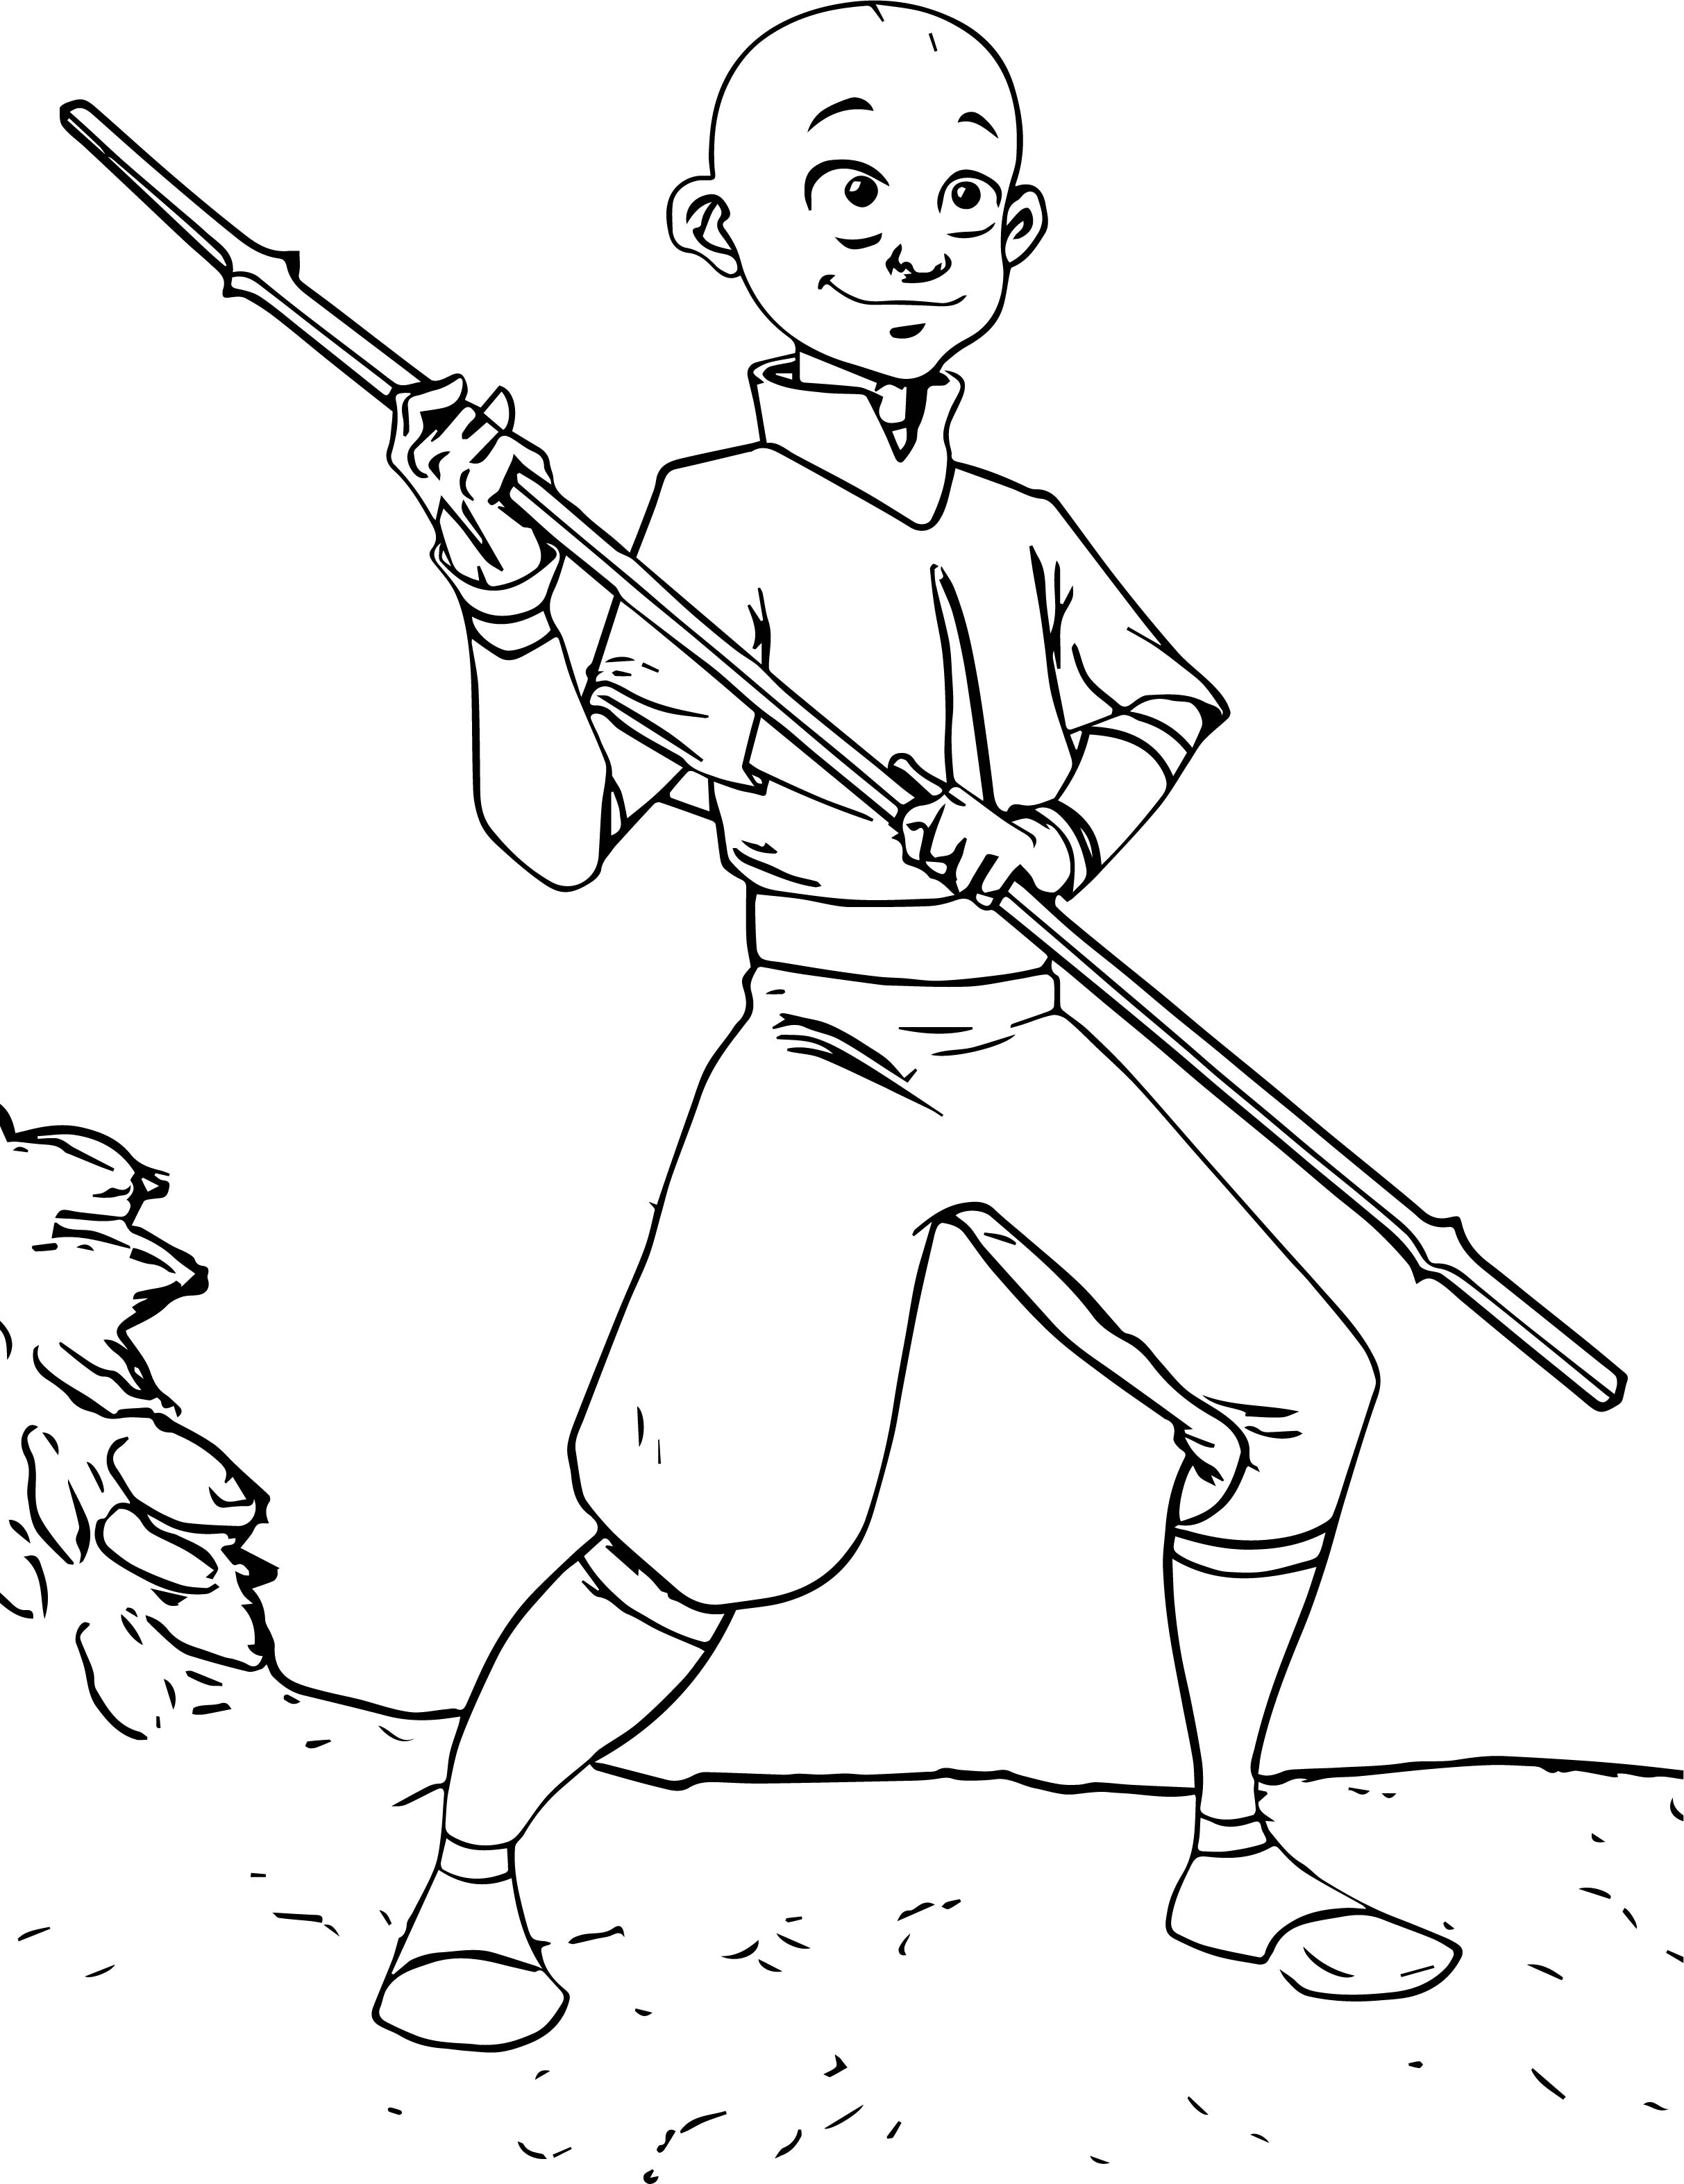 Aang the last airbender jtrazbo avatar aang coloring page for Avatar the last airbender coloring pages